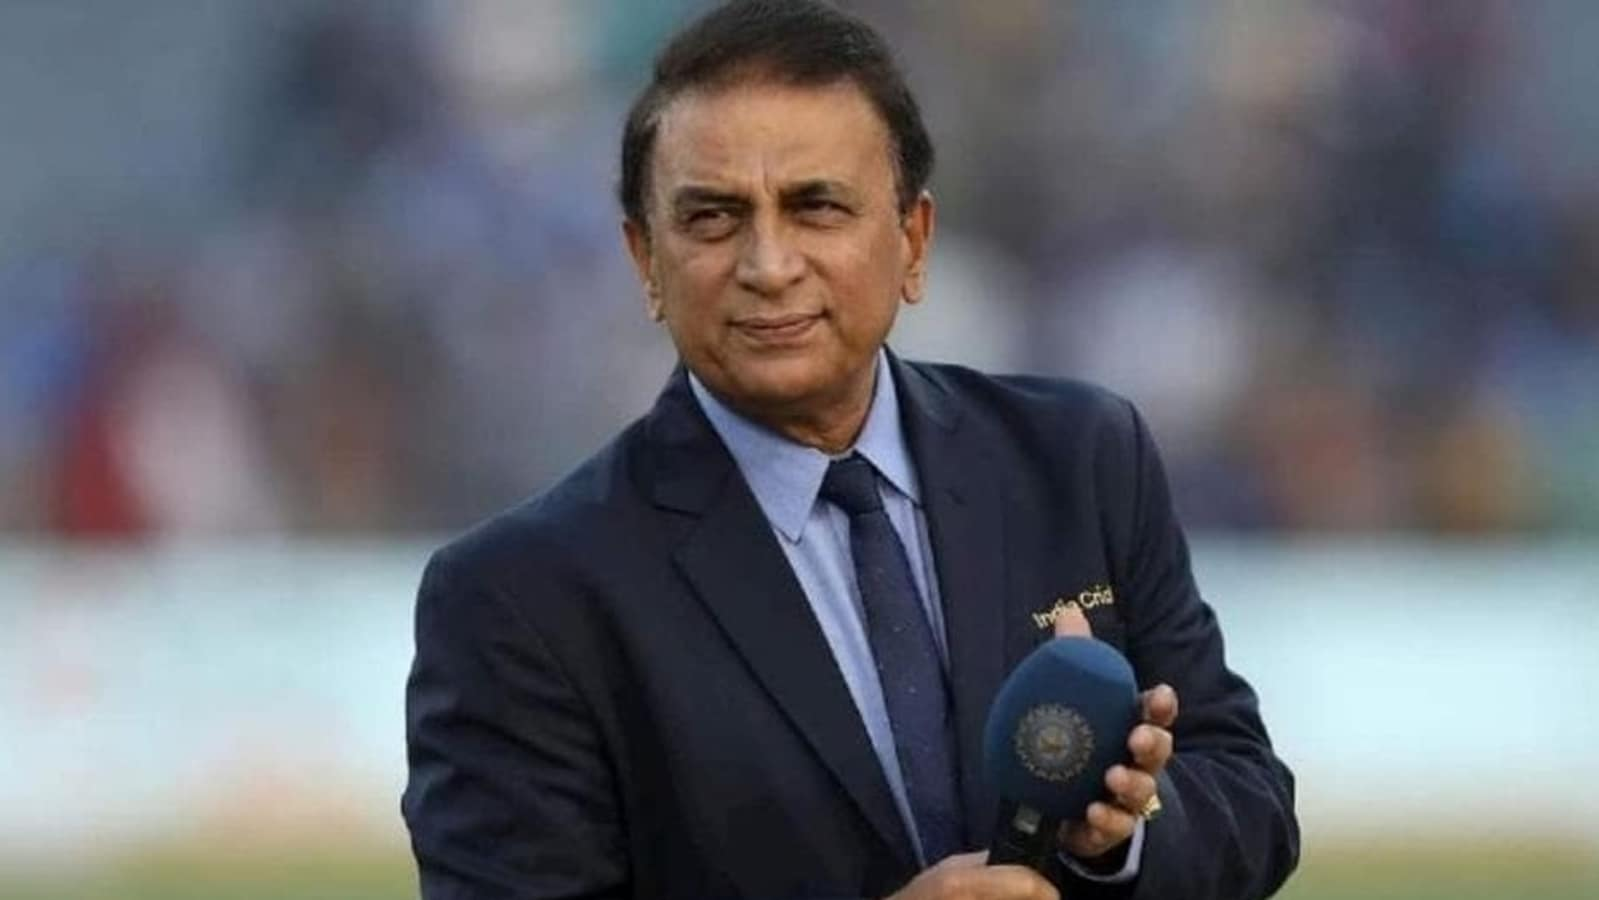 'We are now in television age, every catch has to look better': Sunil Gavaskar on Gowtham's dropped catch